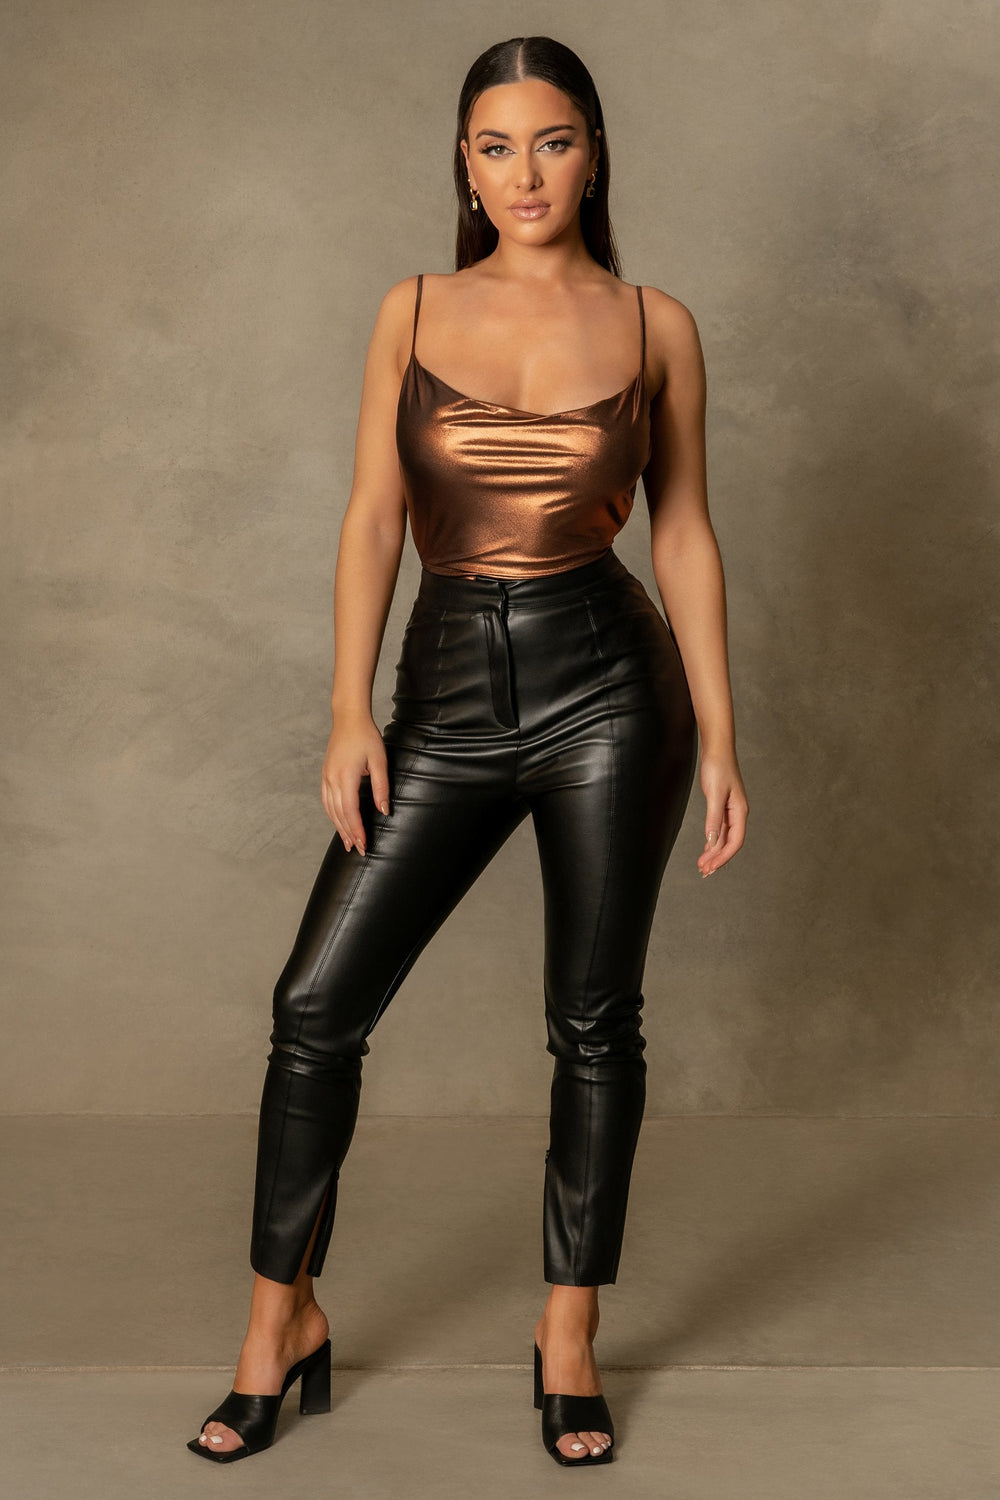 Cita Metallic Cowl Bodysuit - Chocolate - MESHKI ?id=16109880115275